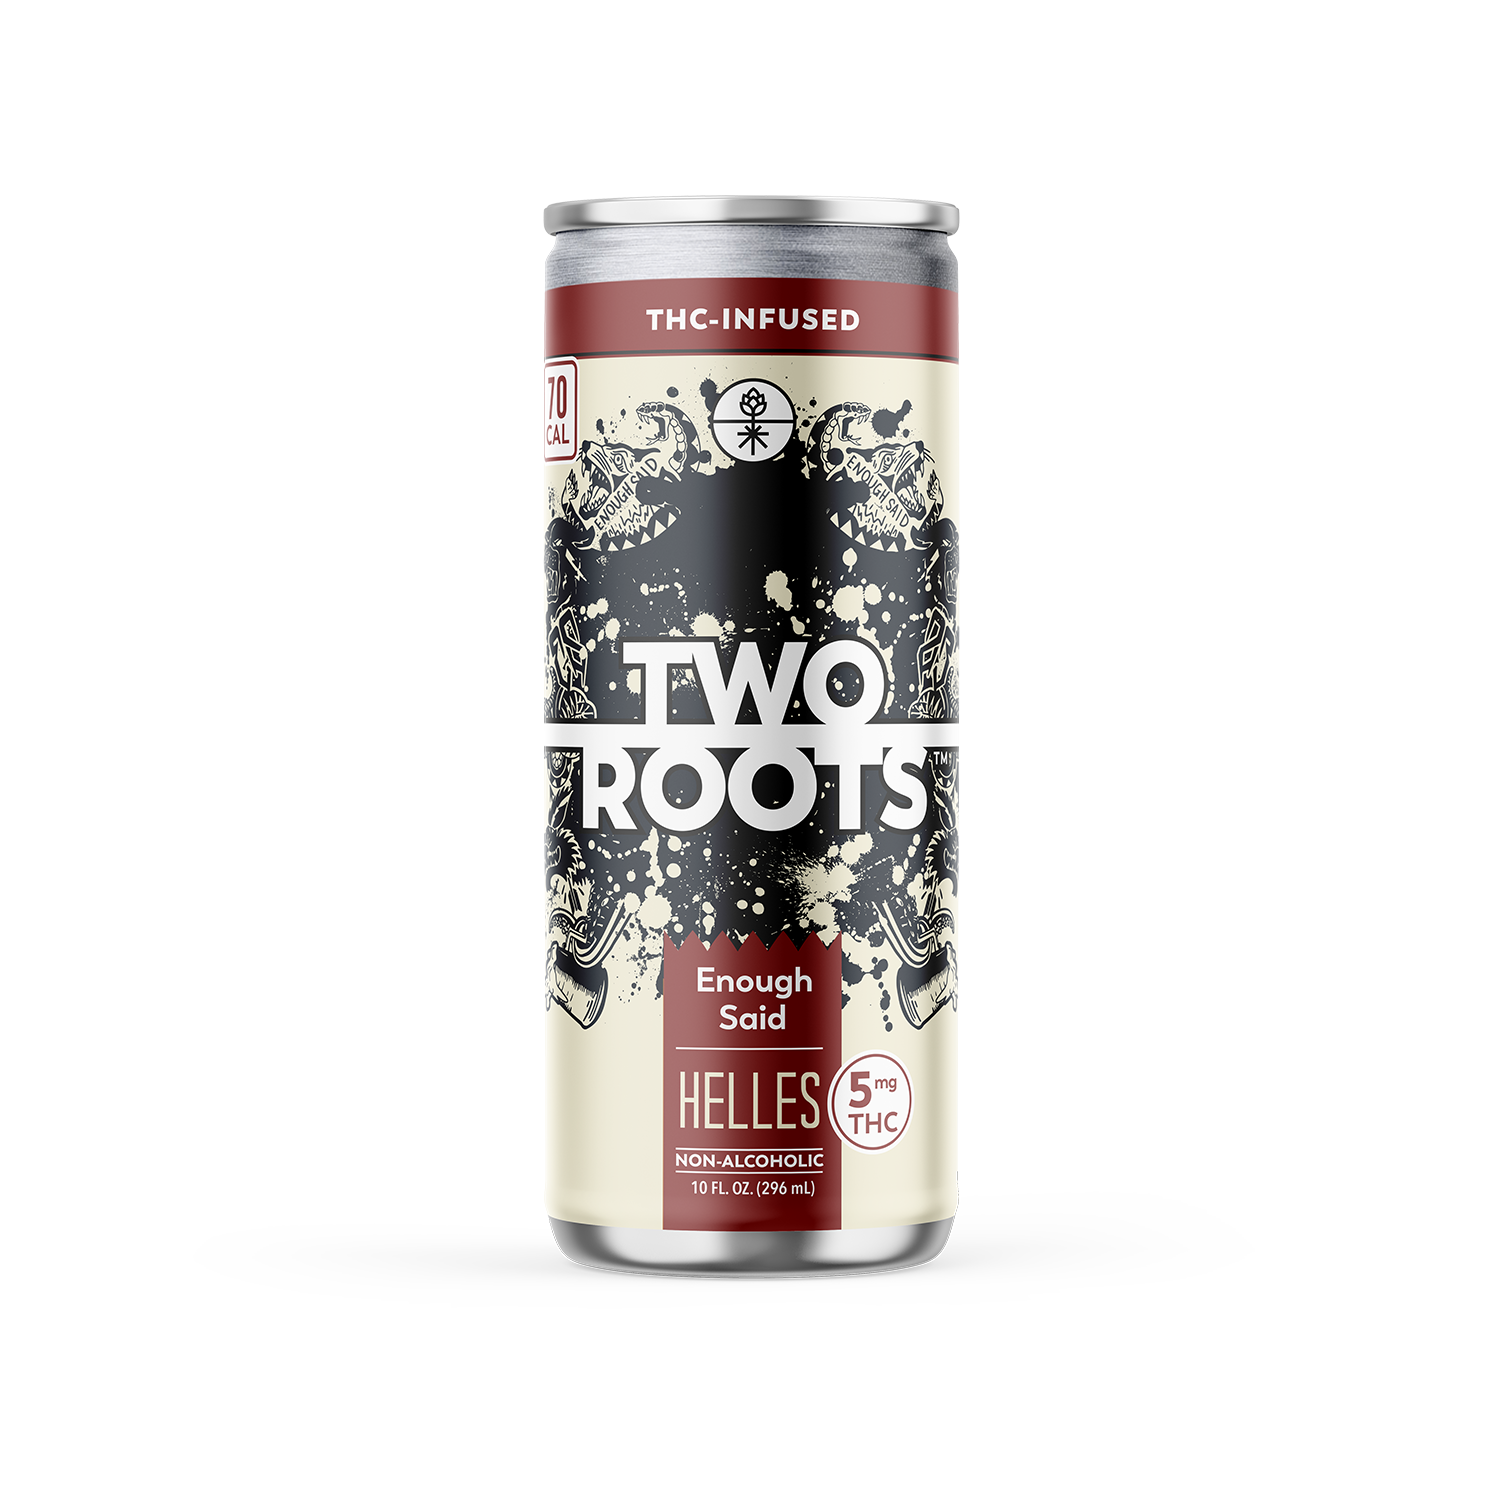 "Two Roots ""Enough Said"" Helles – 5mg THC"